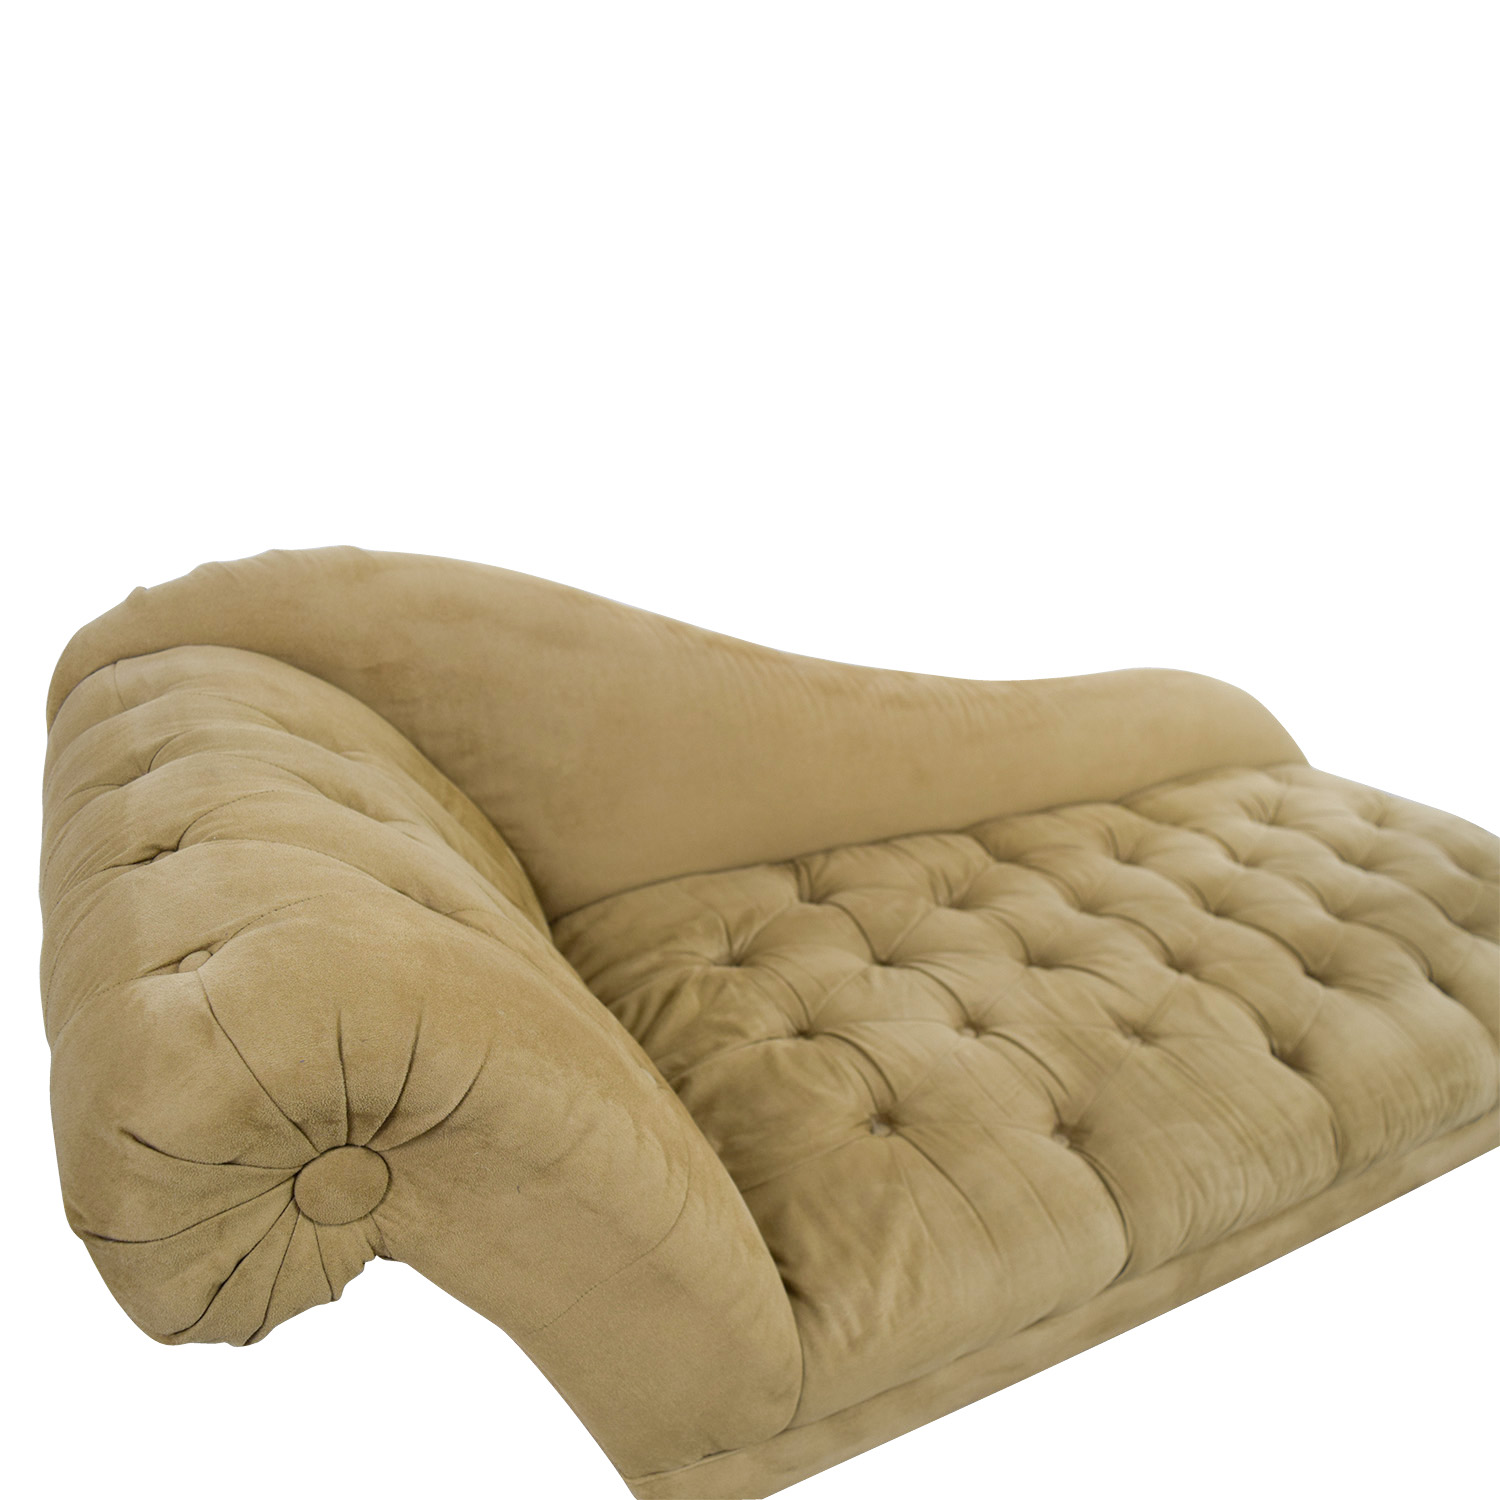 68 off tufted brown chaise lounge sofa sofas for Brown chaise lounge sofa